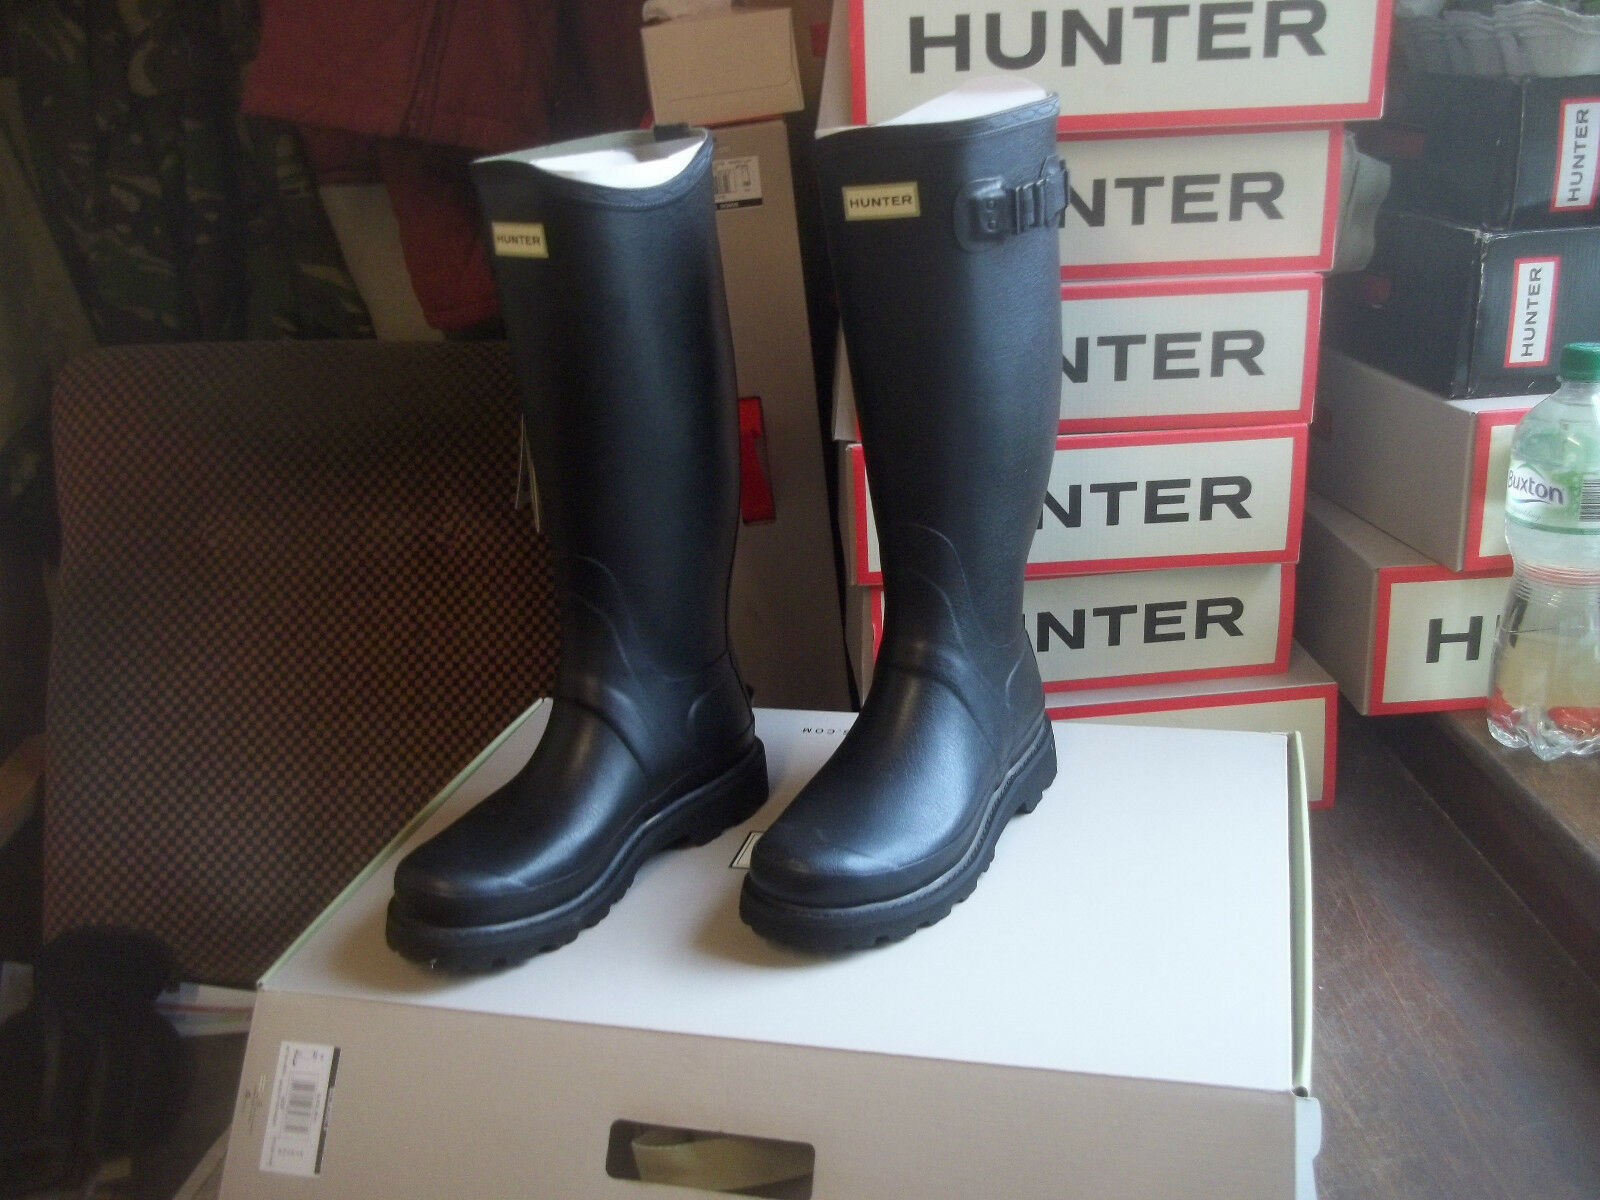 2 HALIFAX IN WELLINGTONS HUNTER BALMORAL MENS schwarz 7 uk